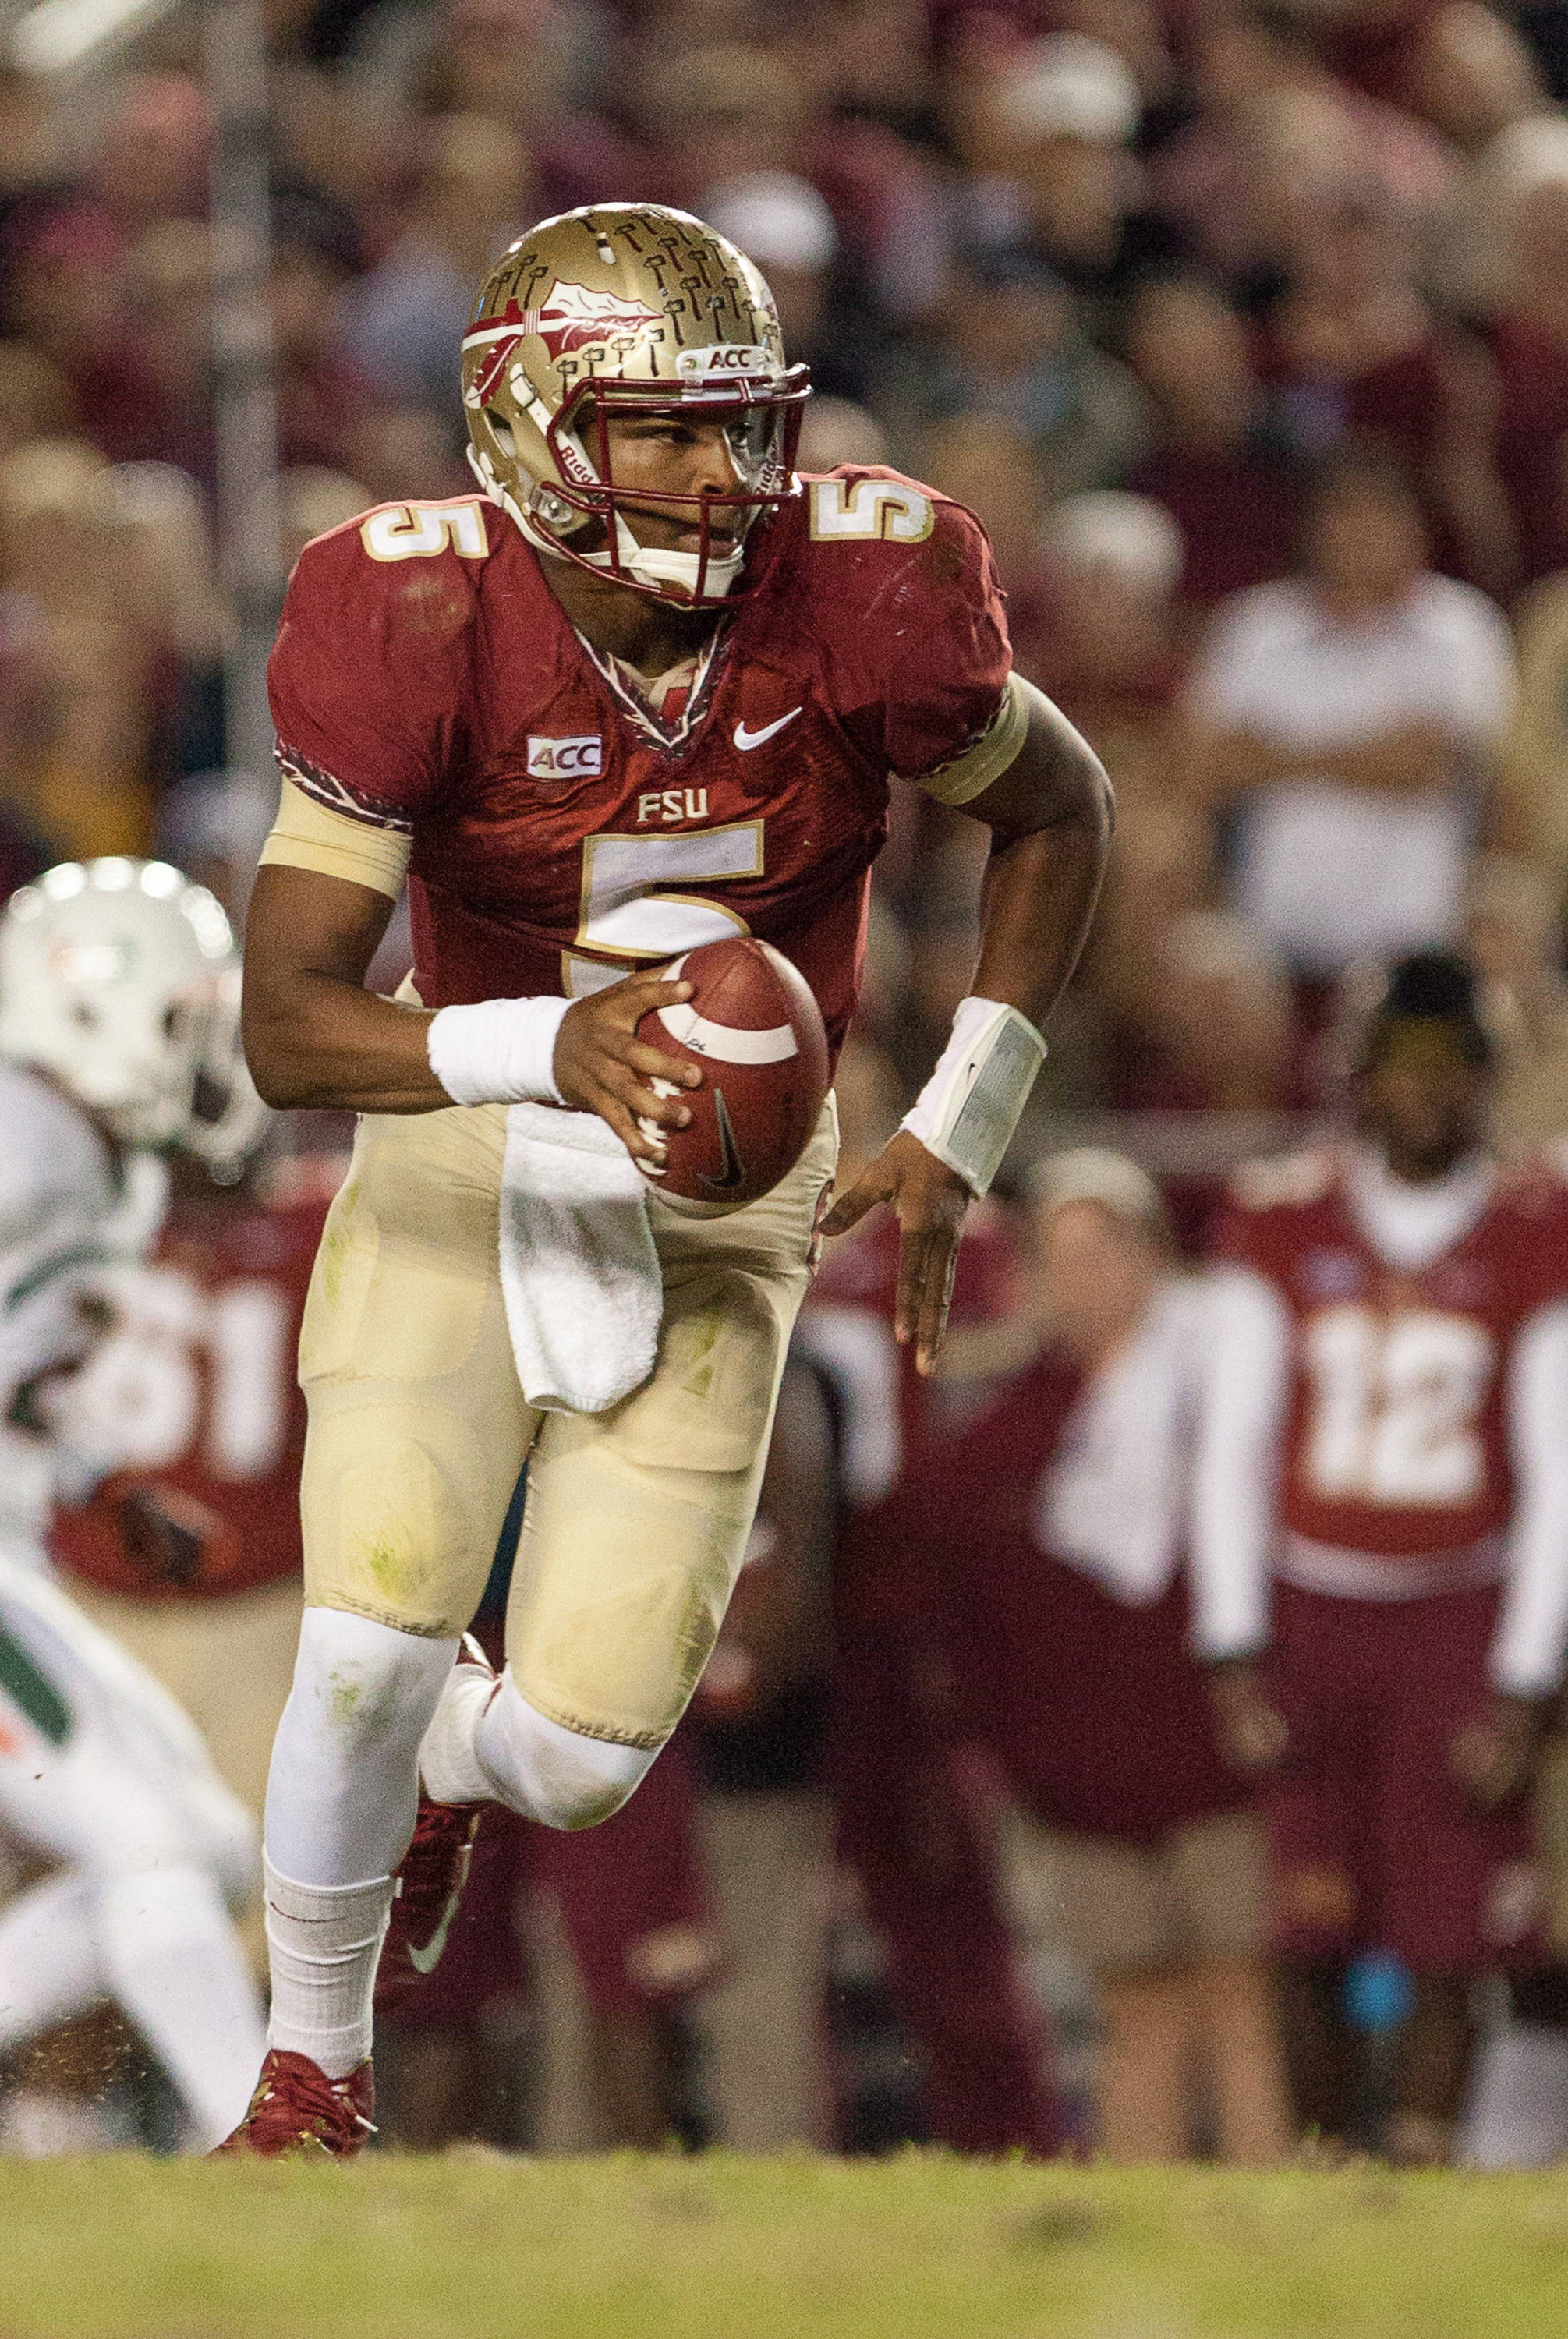 Jameis Winston (5) handles the ball during FSU football's 41-14 win over Miami on Saturday, November 2, 2013 in Tallahassee, Fla. Photo by Michael Schwarz.